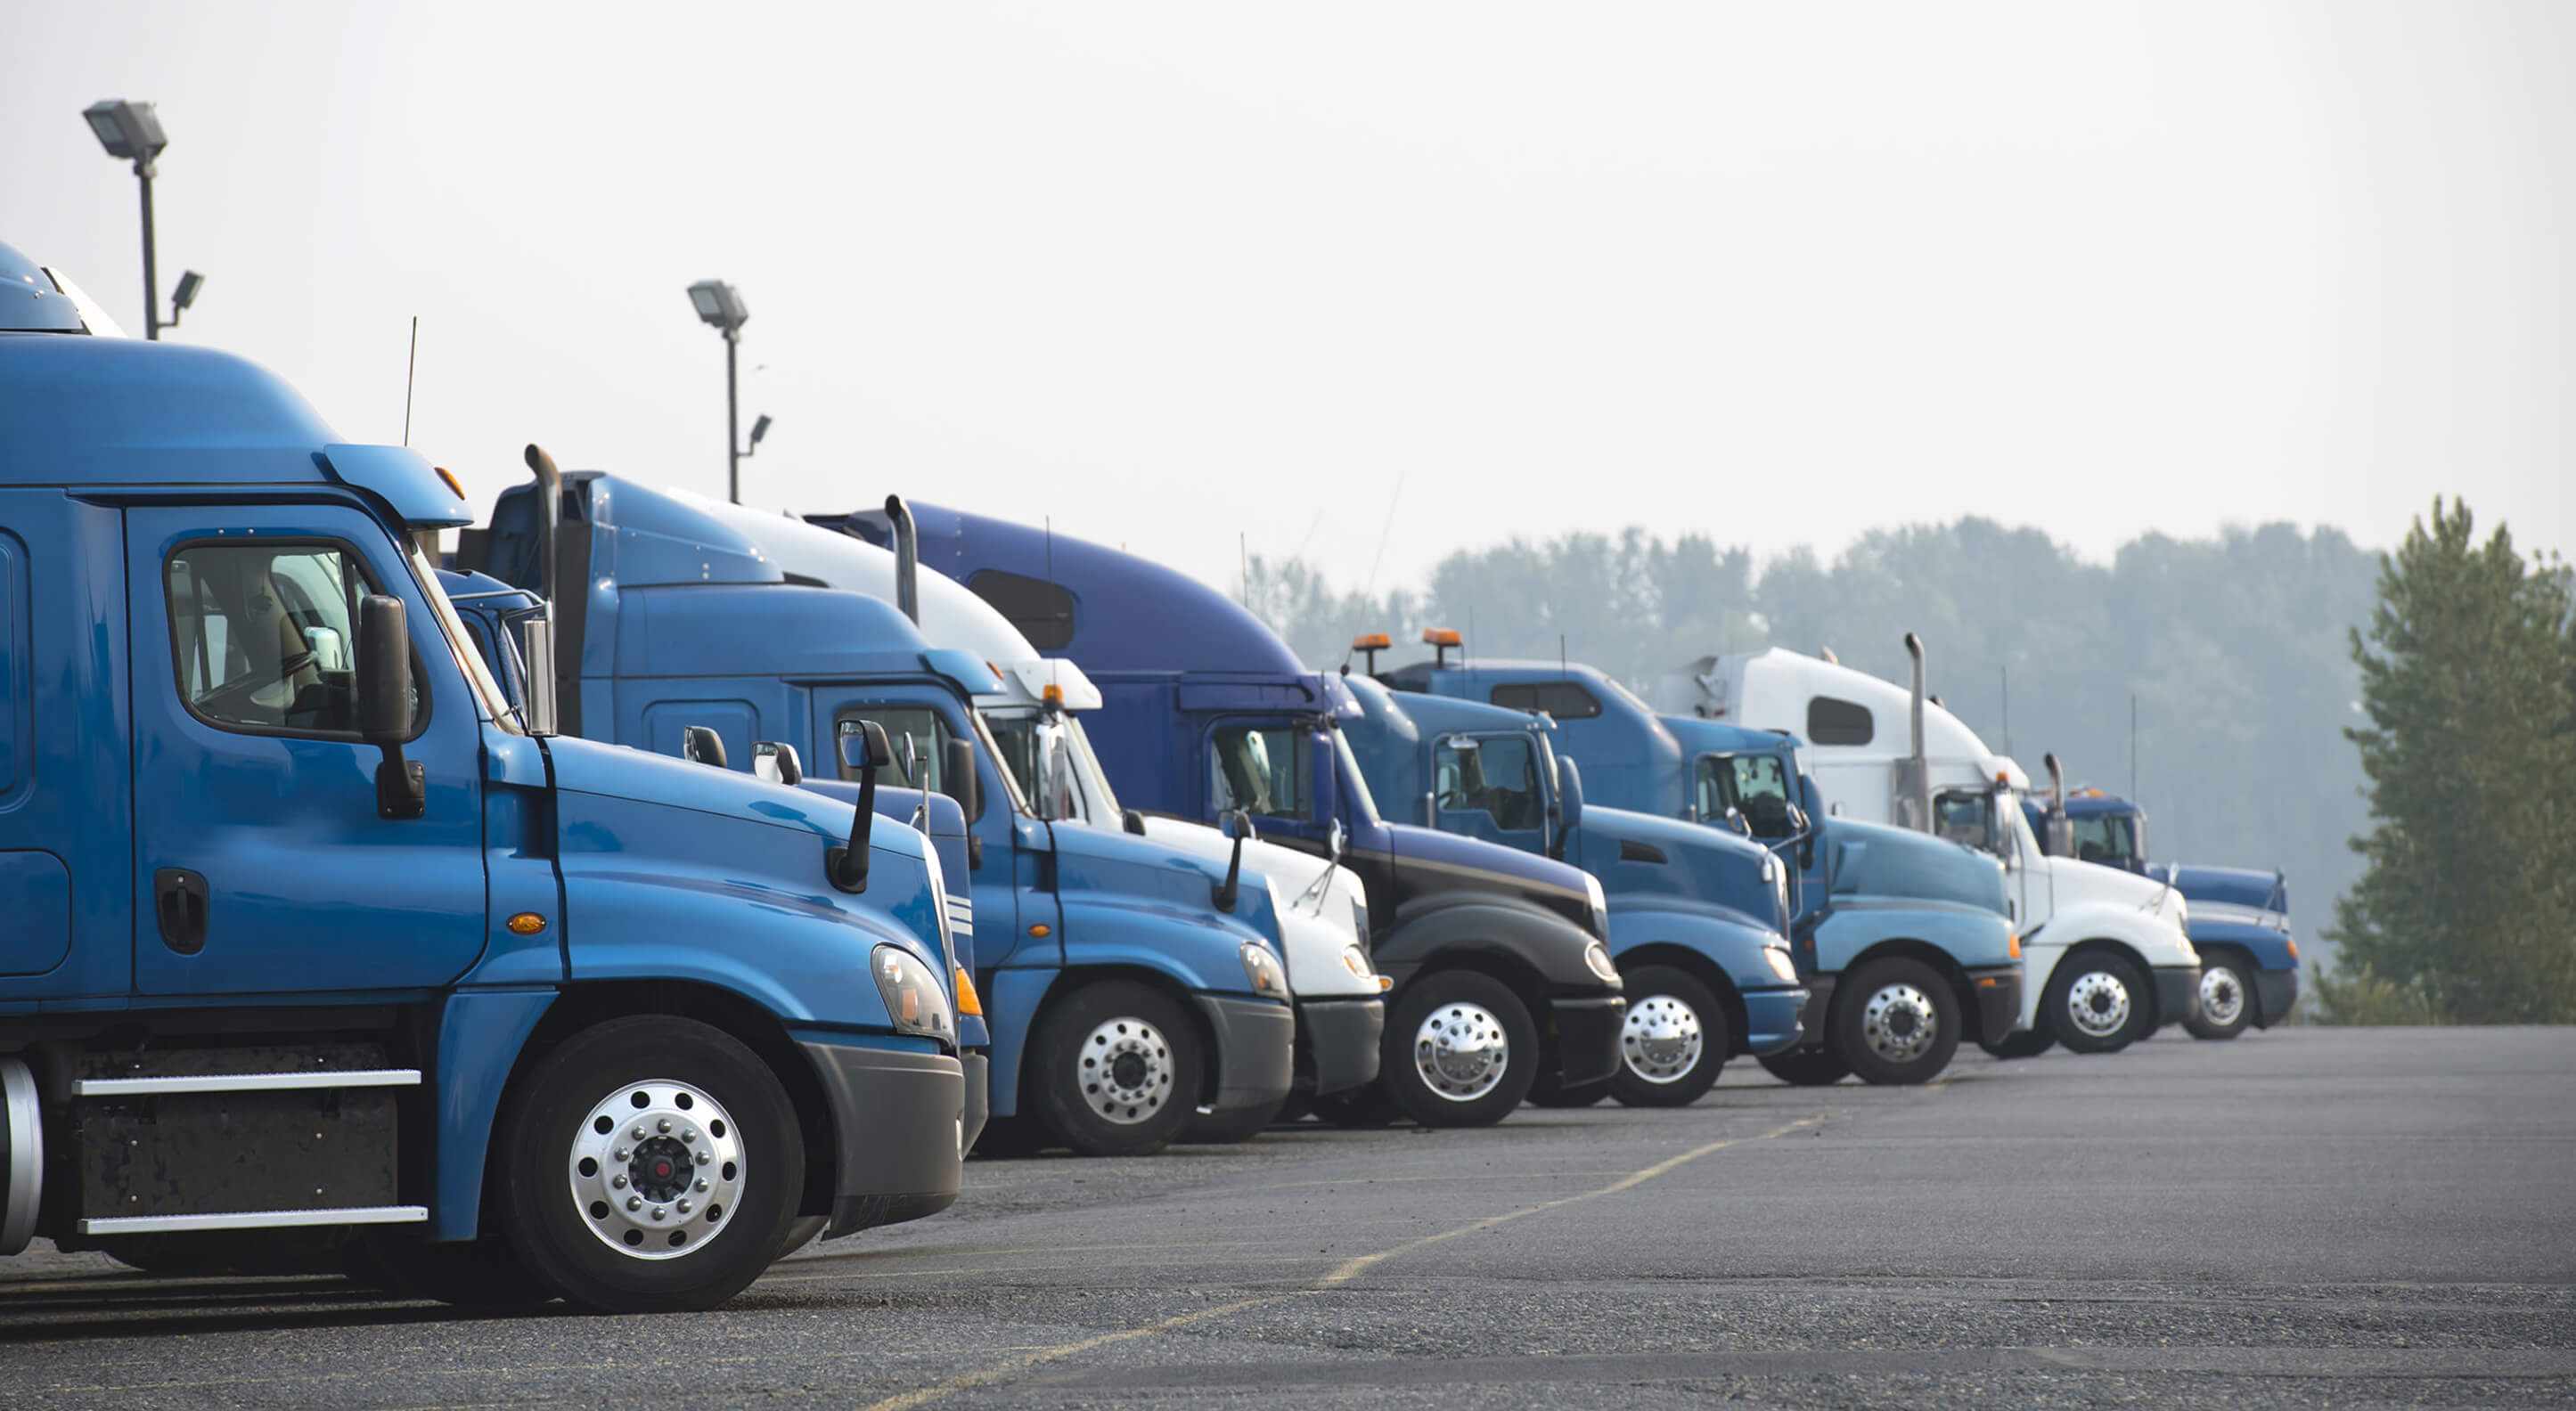 row of blue semi truck for sale at a parking lot